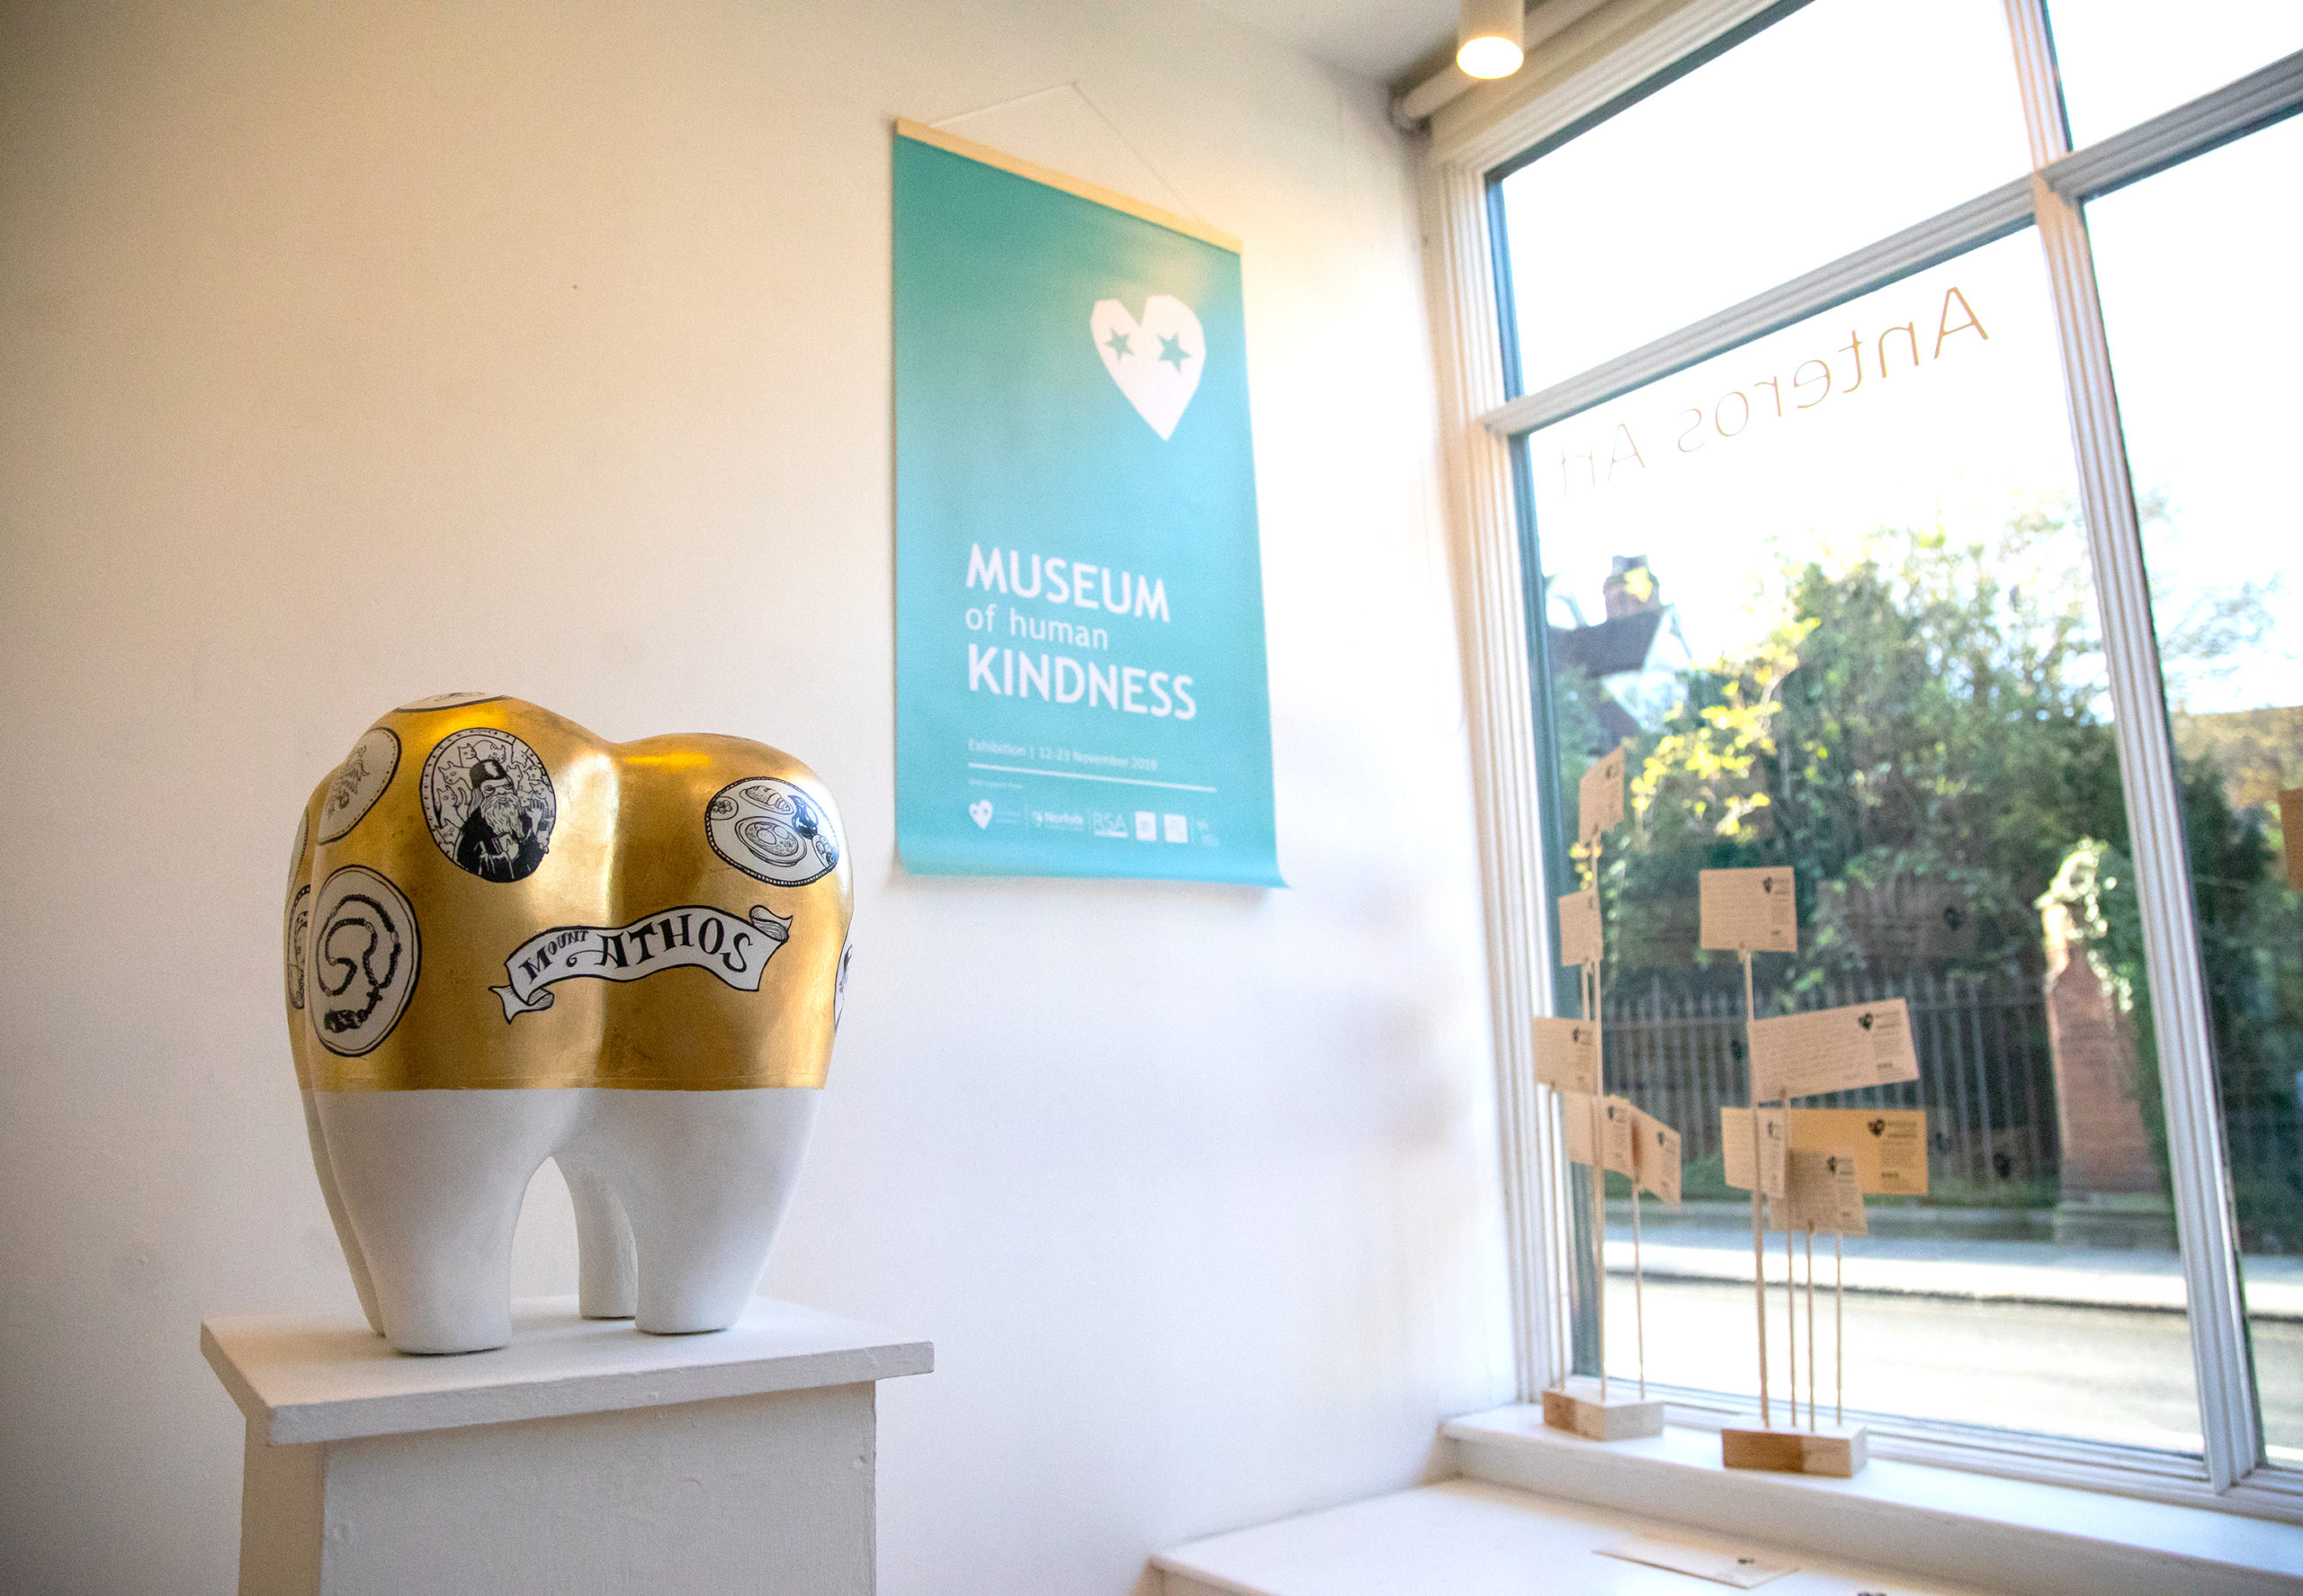 Museum of Human Kindness